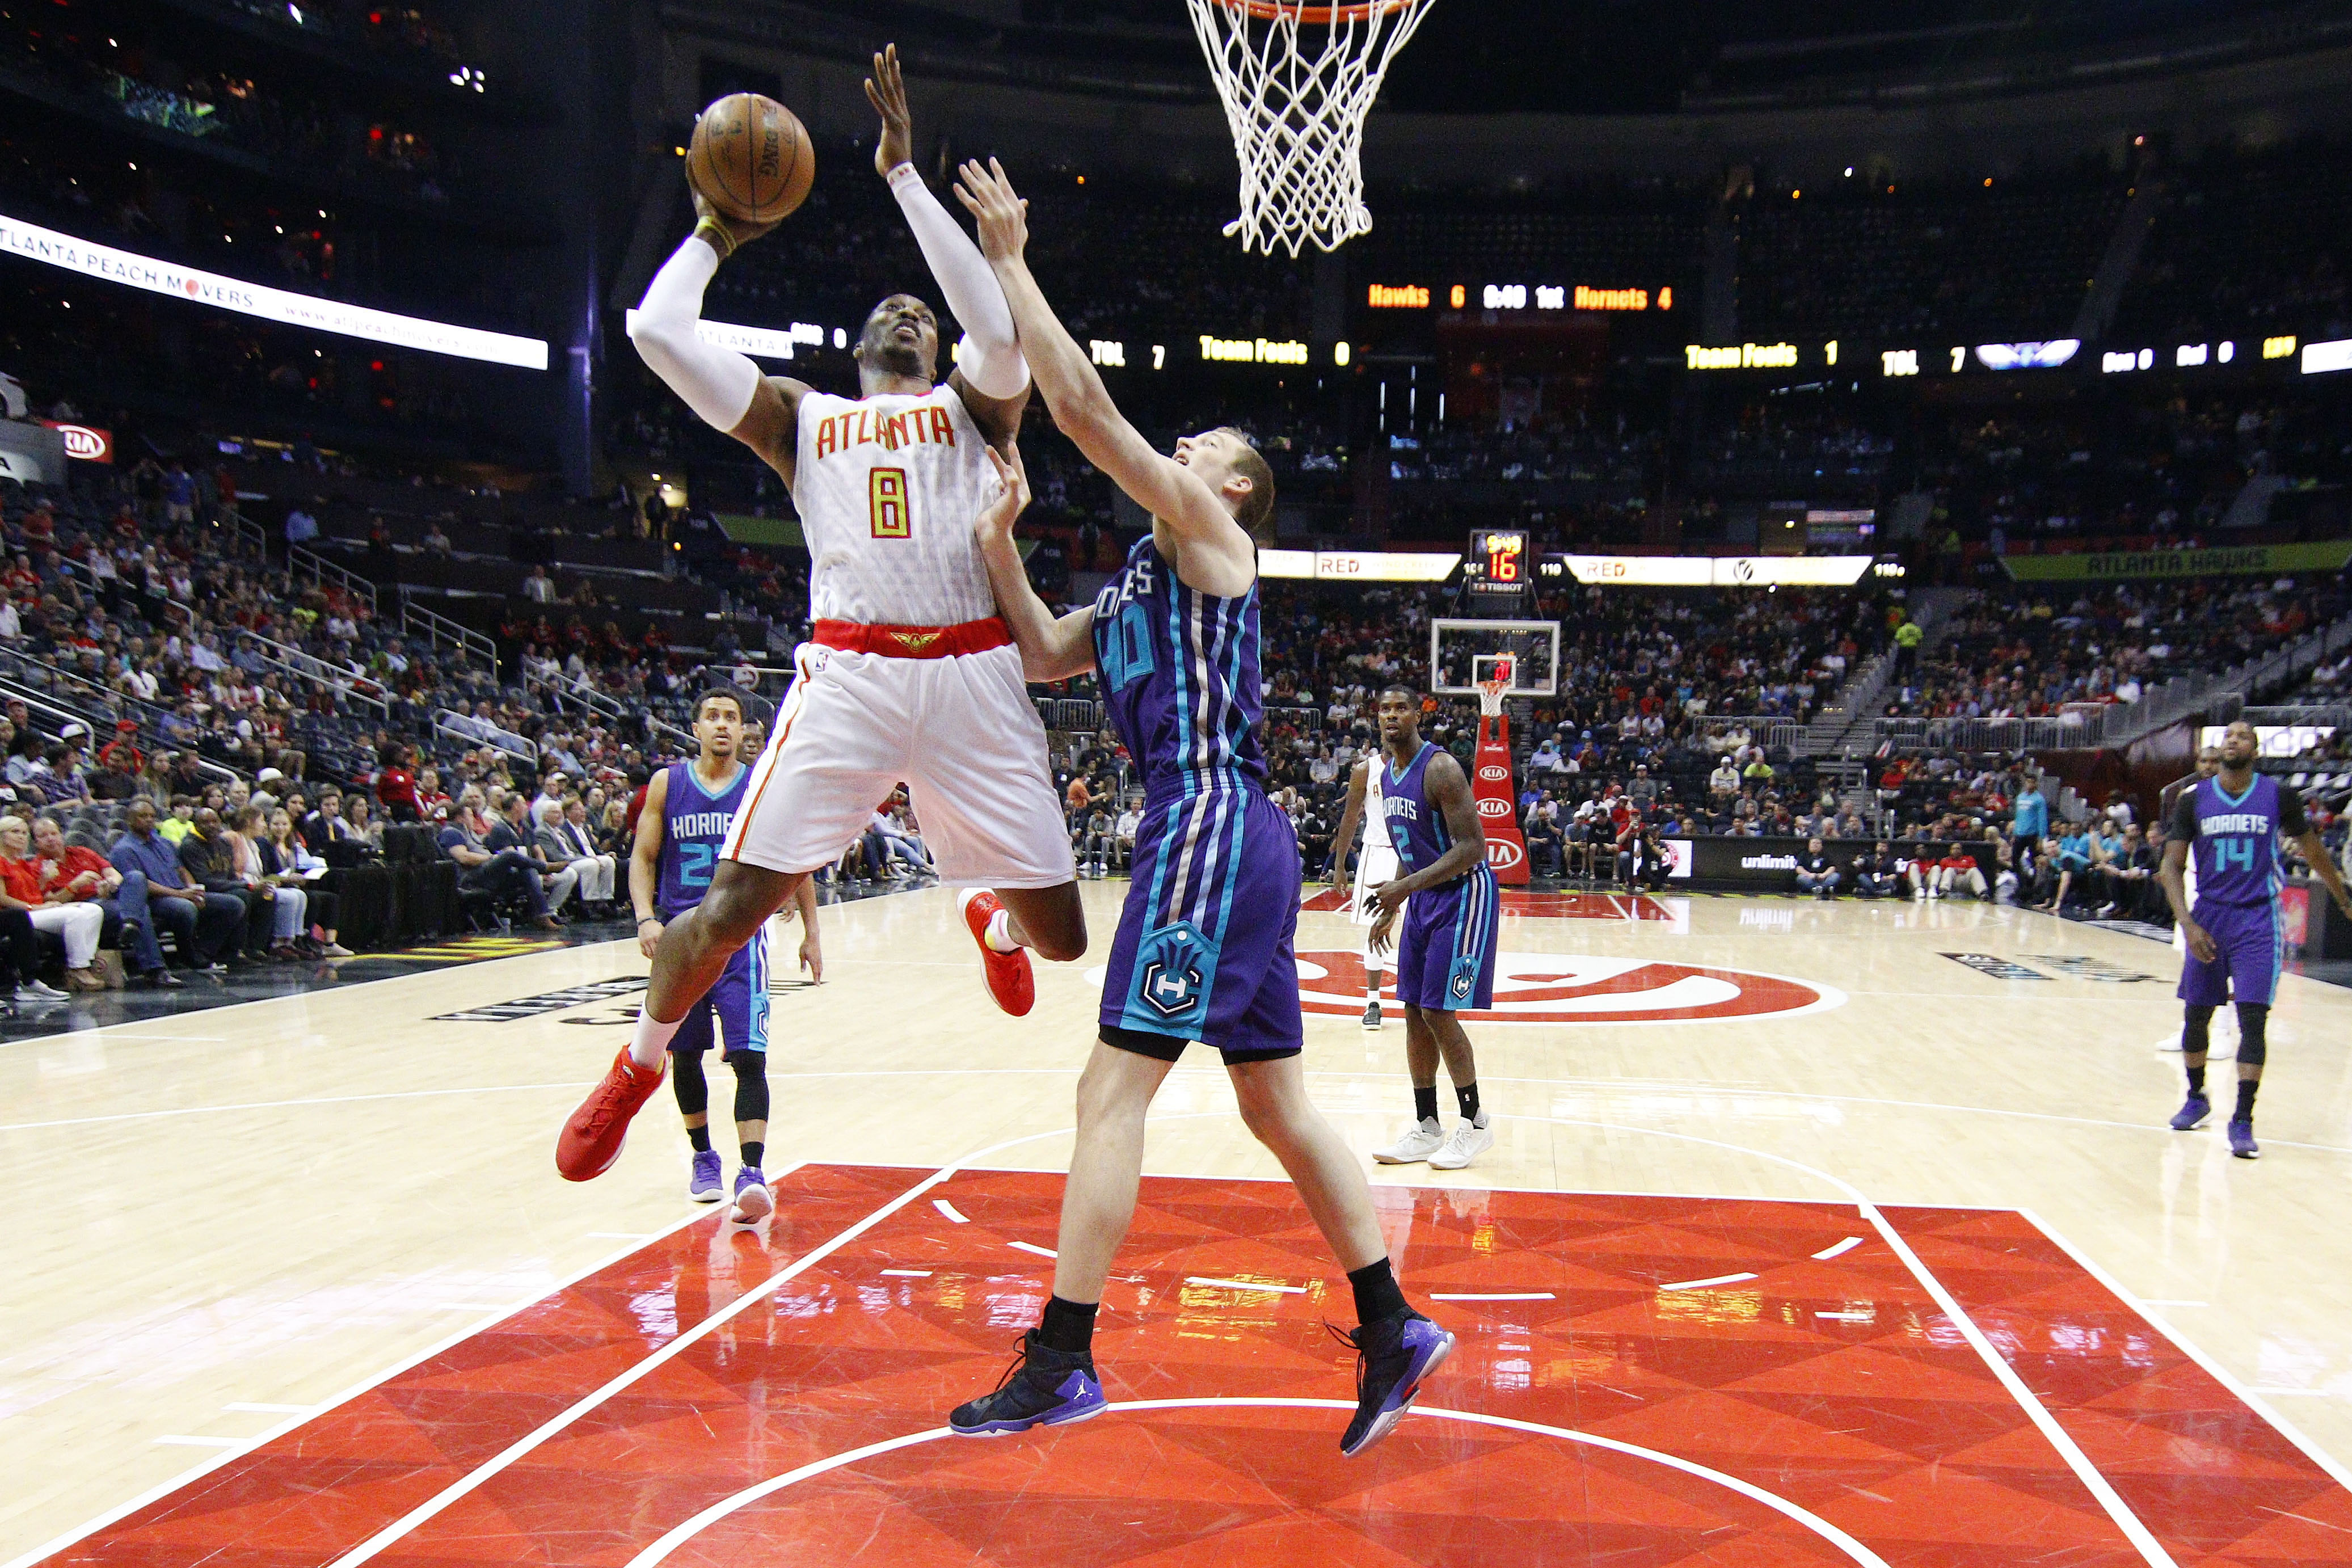 10006754-nba-charlotte-hornets-at-atlanta-hawks